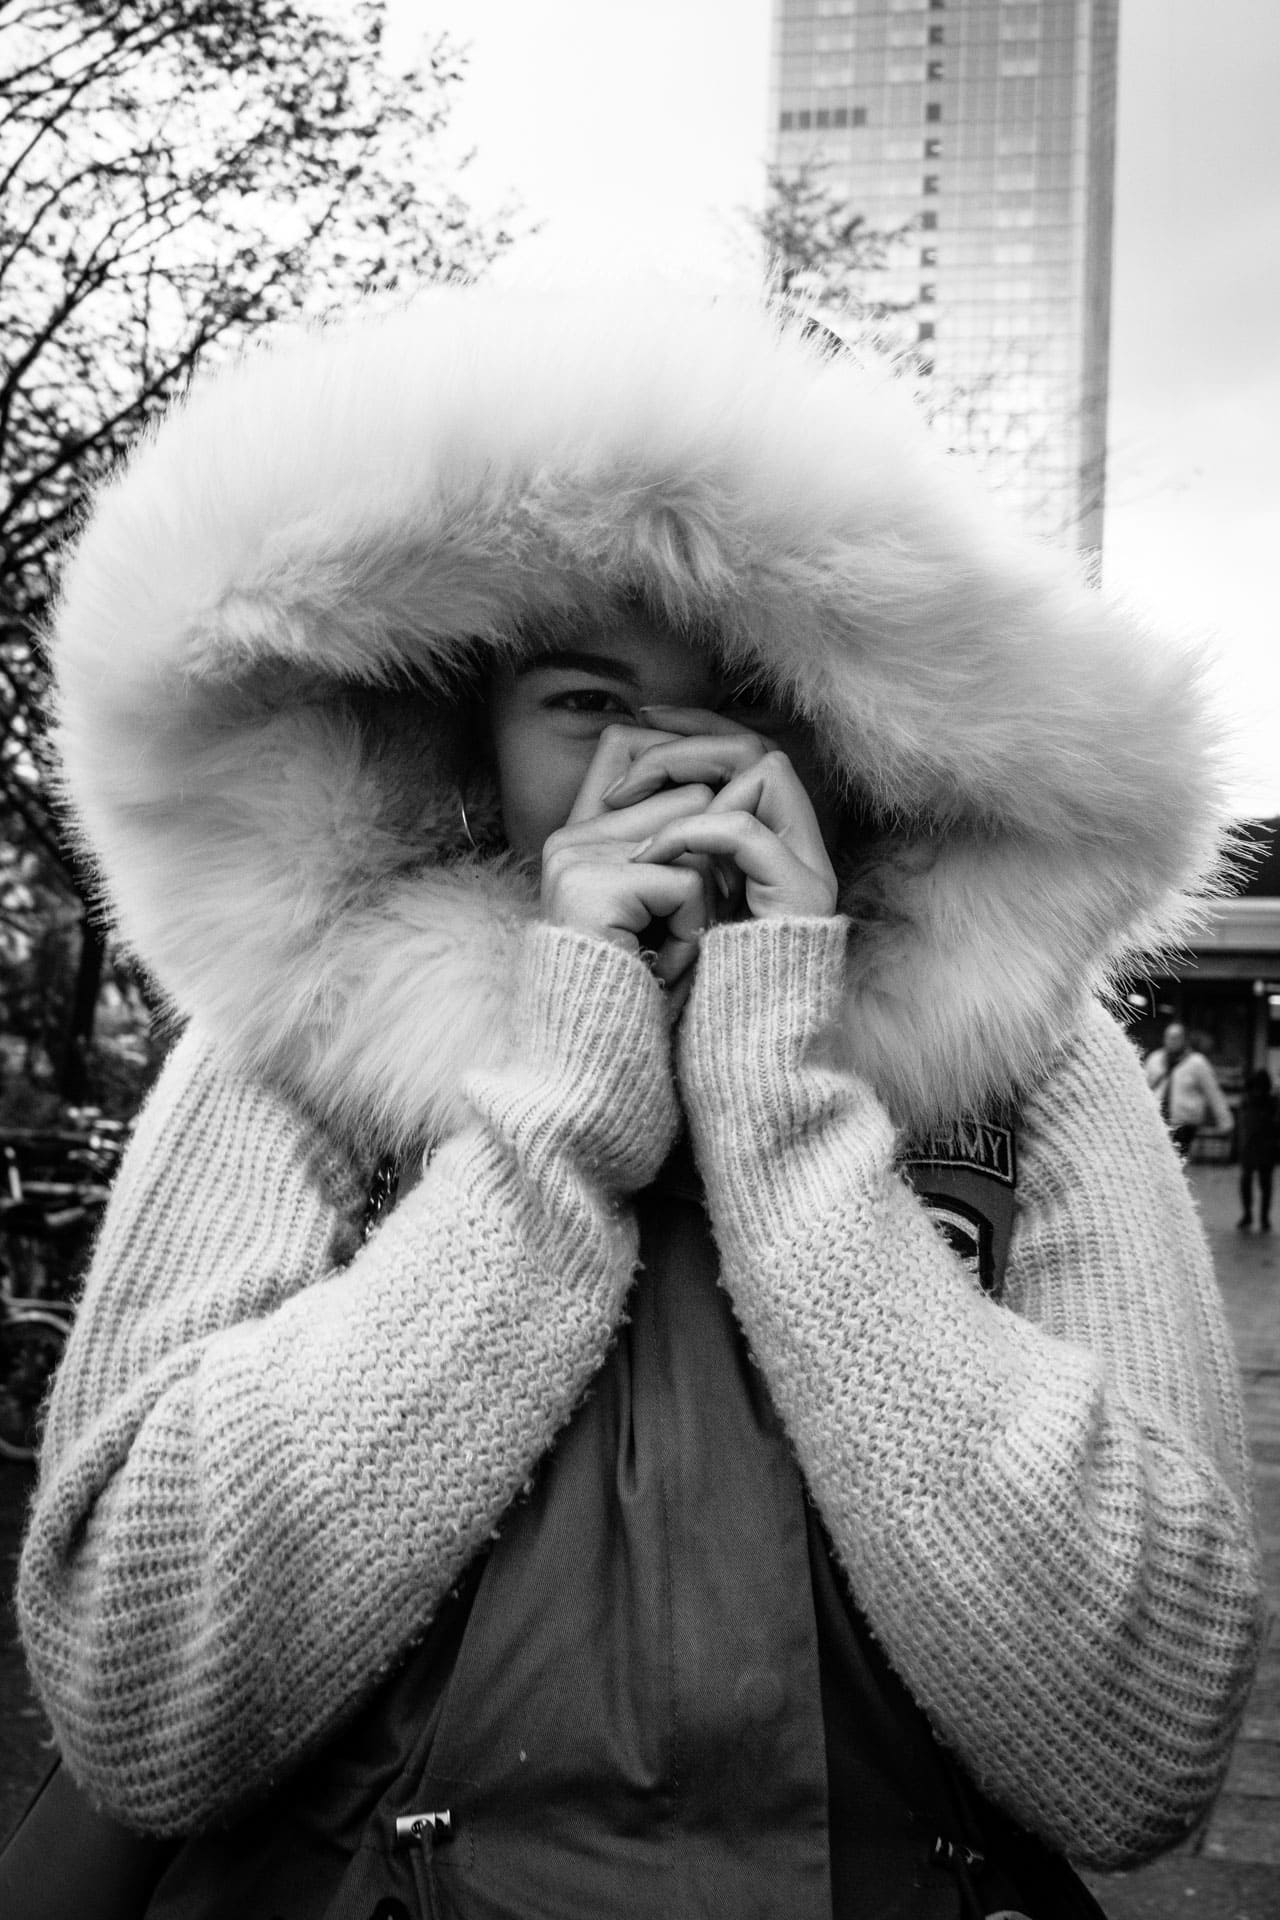 Shy girl with fur hat.